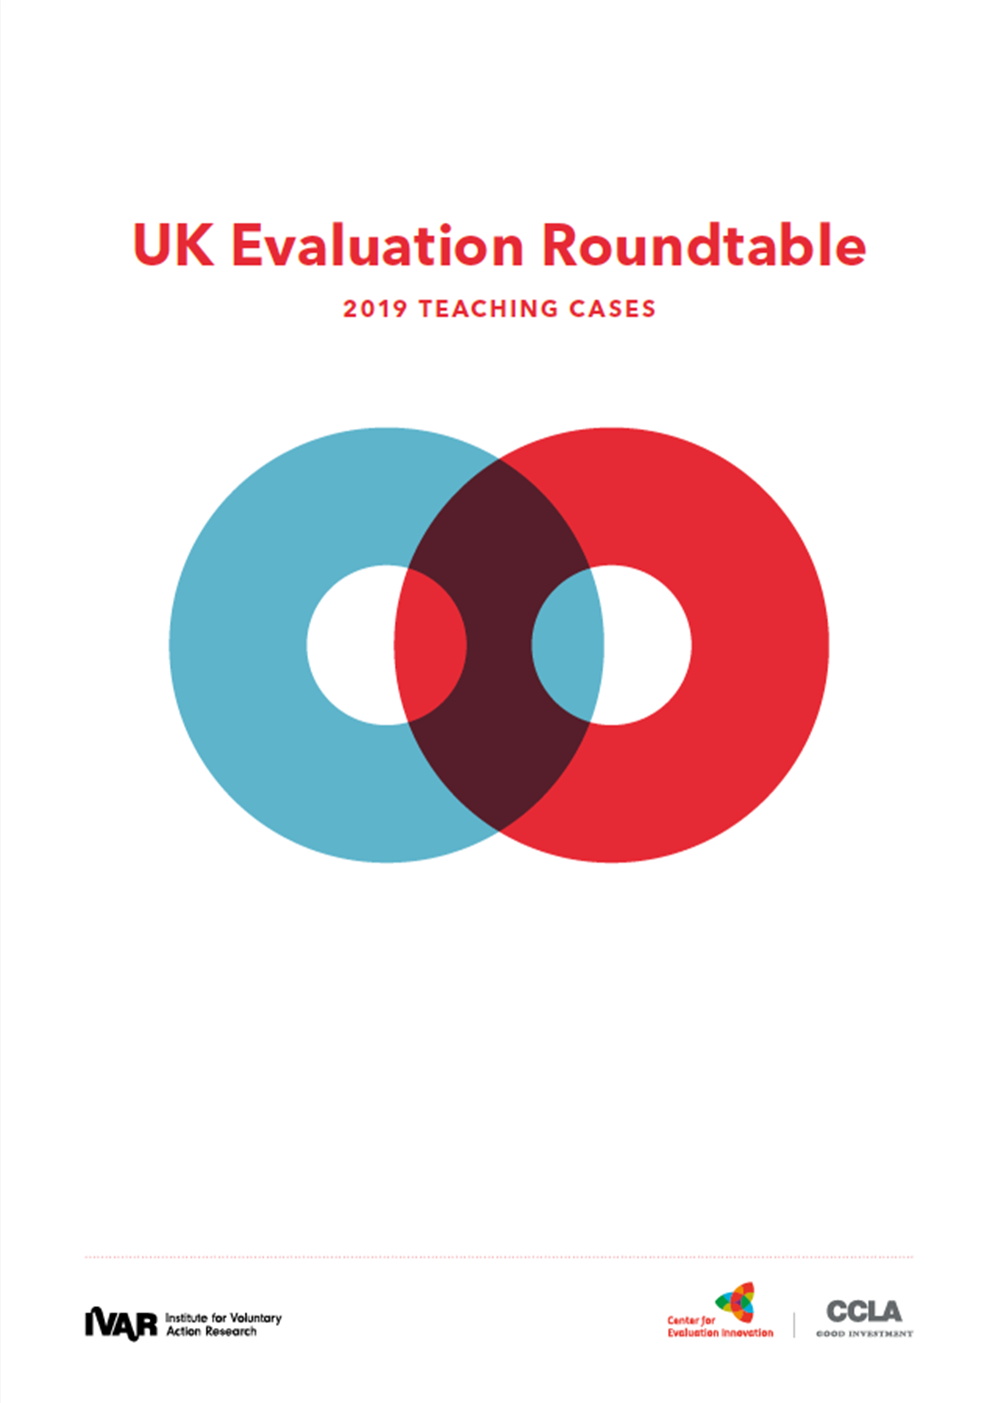 UK Evaluation Roundtable Teaching Cases 2019